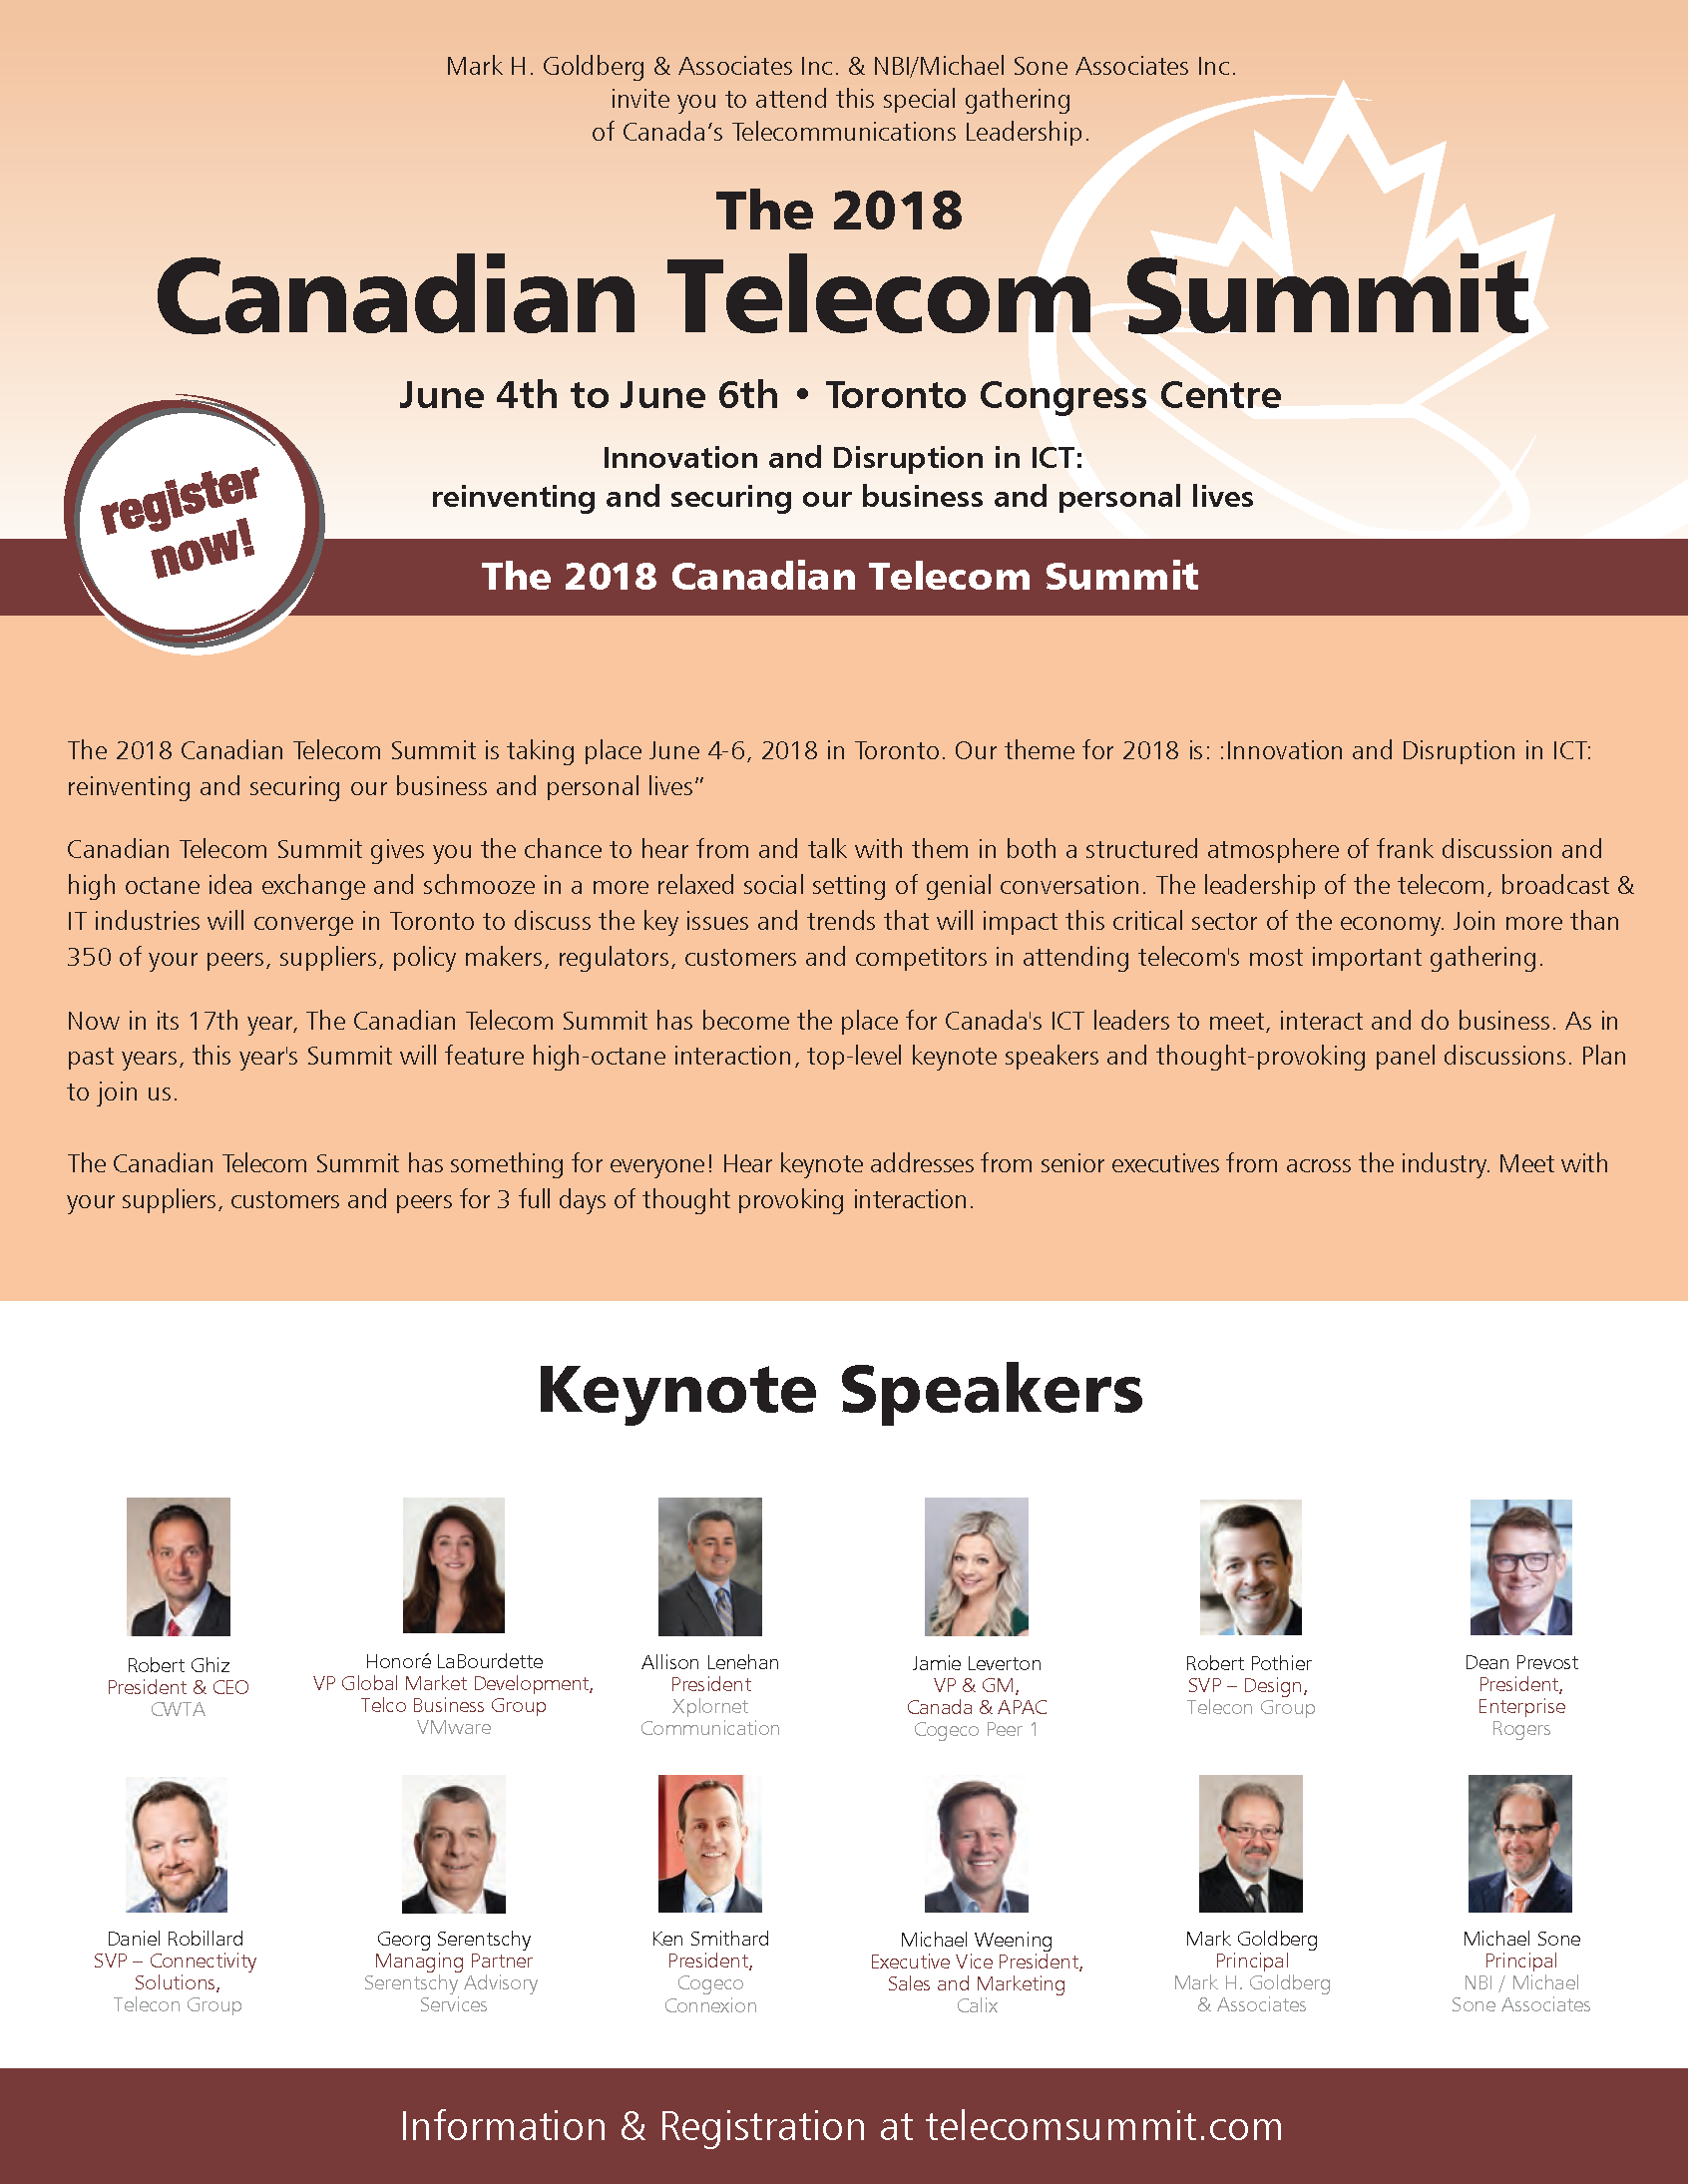 The Canadian Telecom Summit